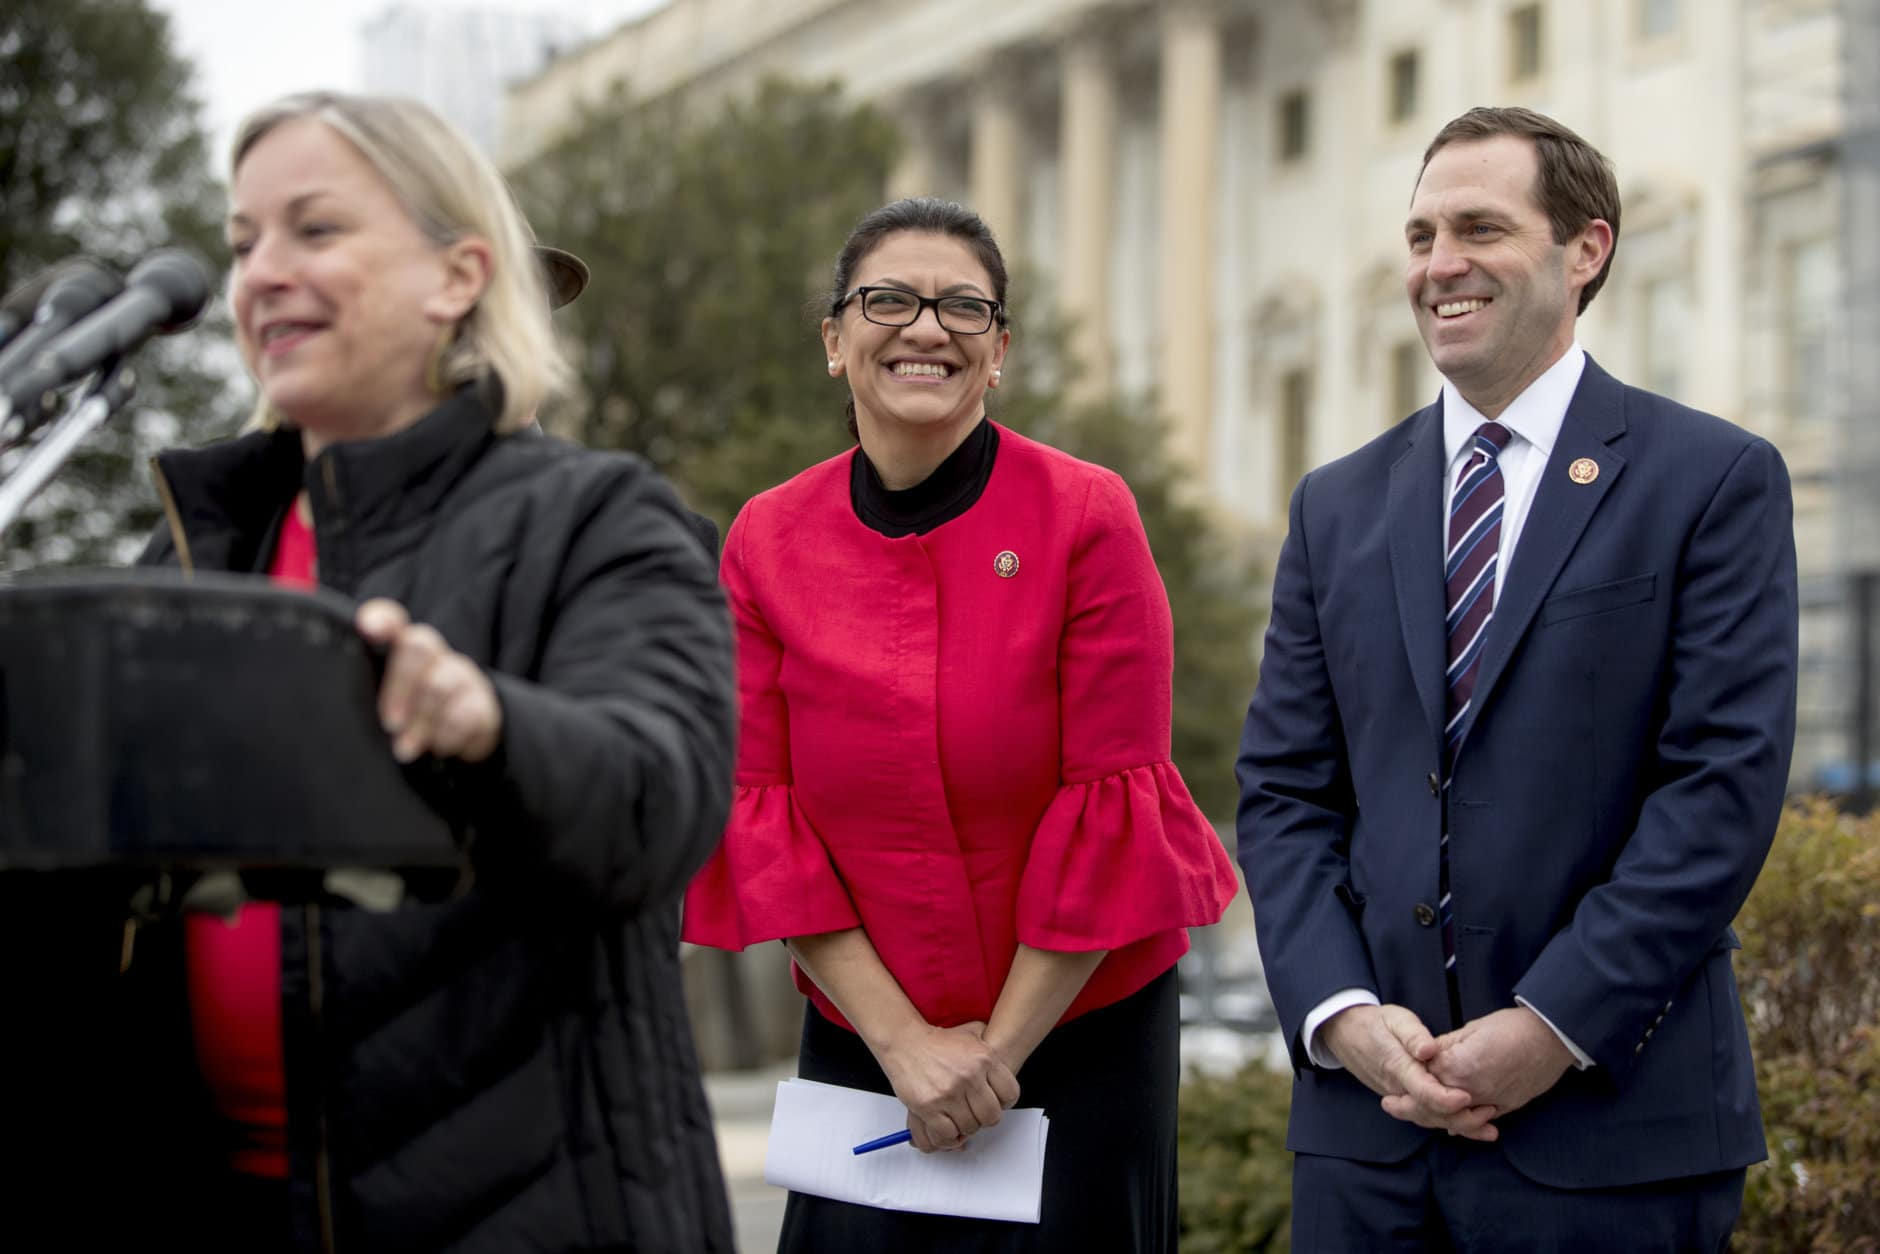 """Rep. Susan Wild, D-Pa., left, accompanied by Rep. Rashida Tlaib, D-Mich., center, and Rep. Jason Crow, D-Colo., right, speaks at a news conference on Capitol Hill in Washington, Thursday, Jan. 17, 2019, to unveil the """"Immediate Financial Relief for Federal Employees Act"""" bill which would give zero interest loans for up to $6,000 to employees impacted by the government shutdown and any future shutdowns. (AP Photo/Andrew Harnik)"""